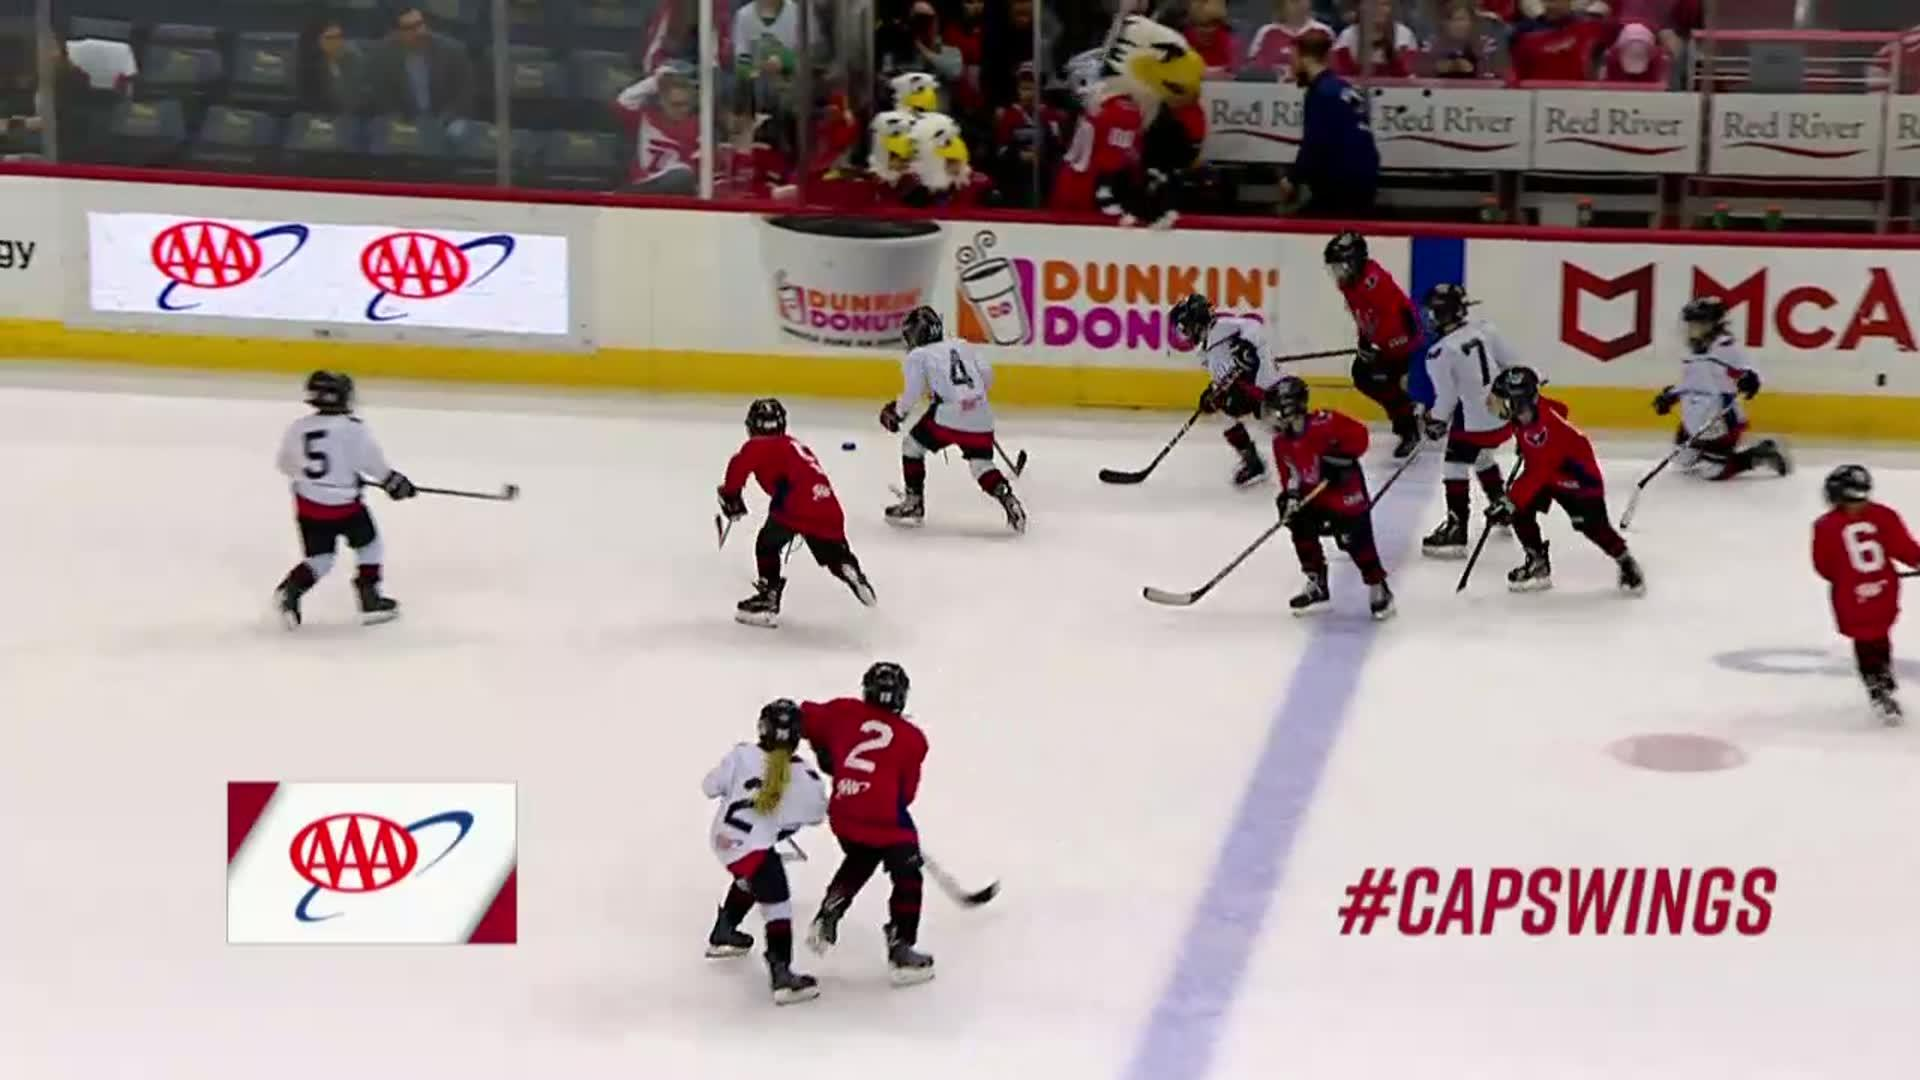 #CapsWings Mites on Ice 2/11/18